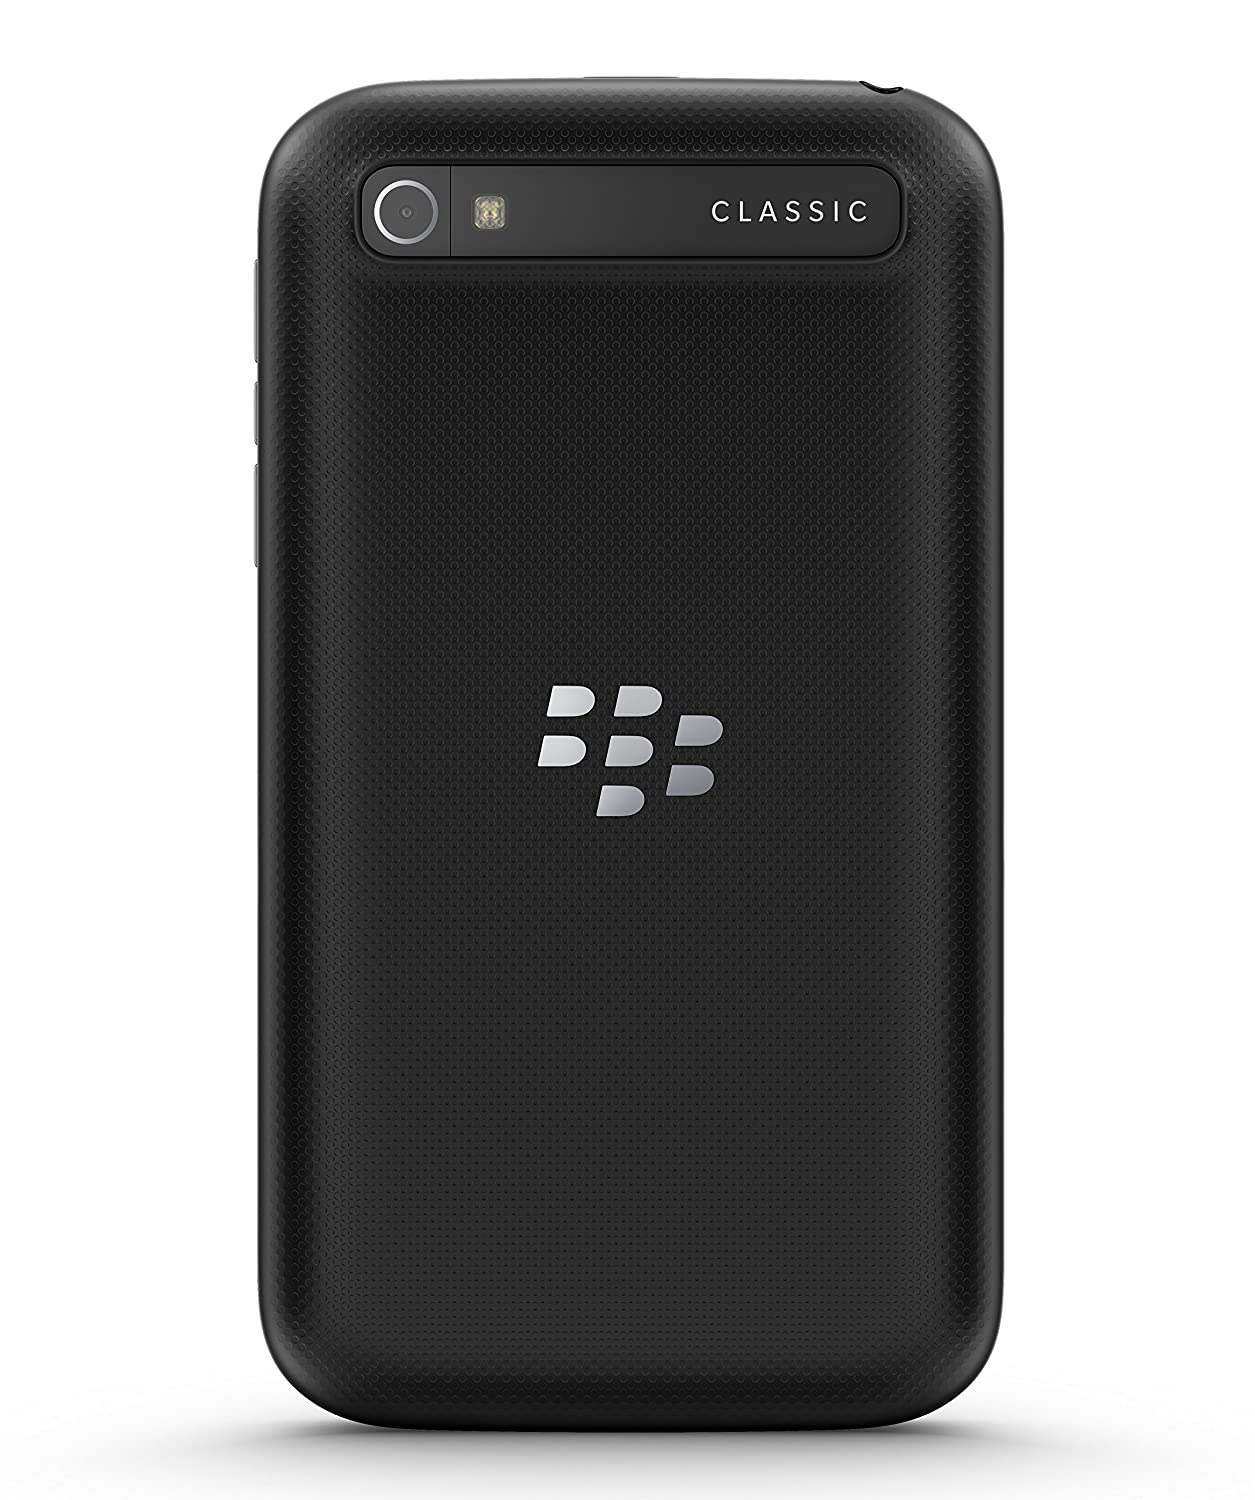 Can a Blackberry phone be connected to a laptop?